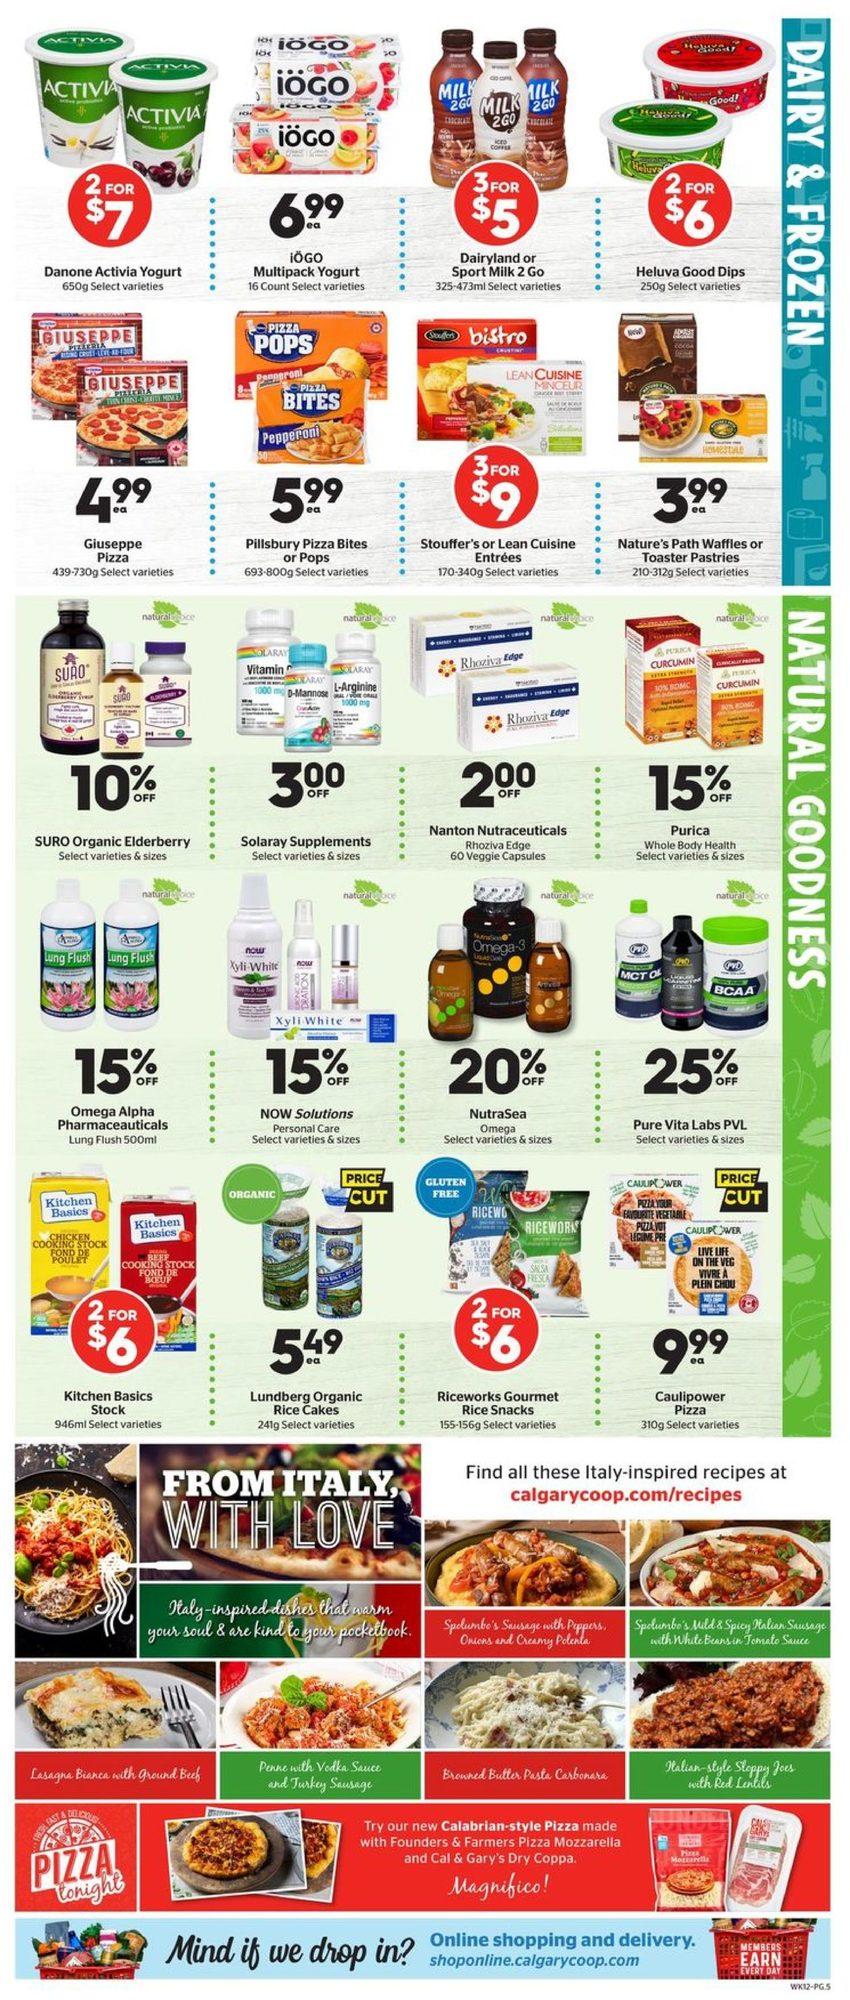 Calgary Co-op - Weekly Flyer Specials - Page 5